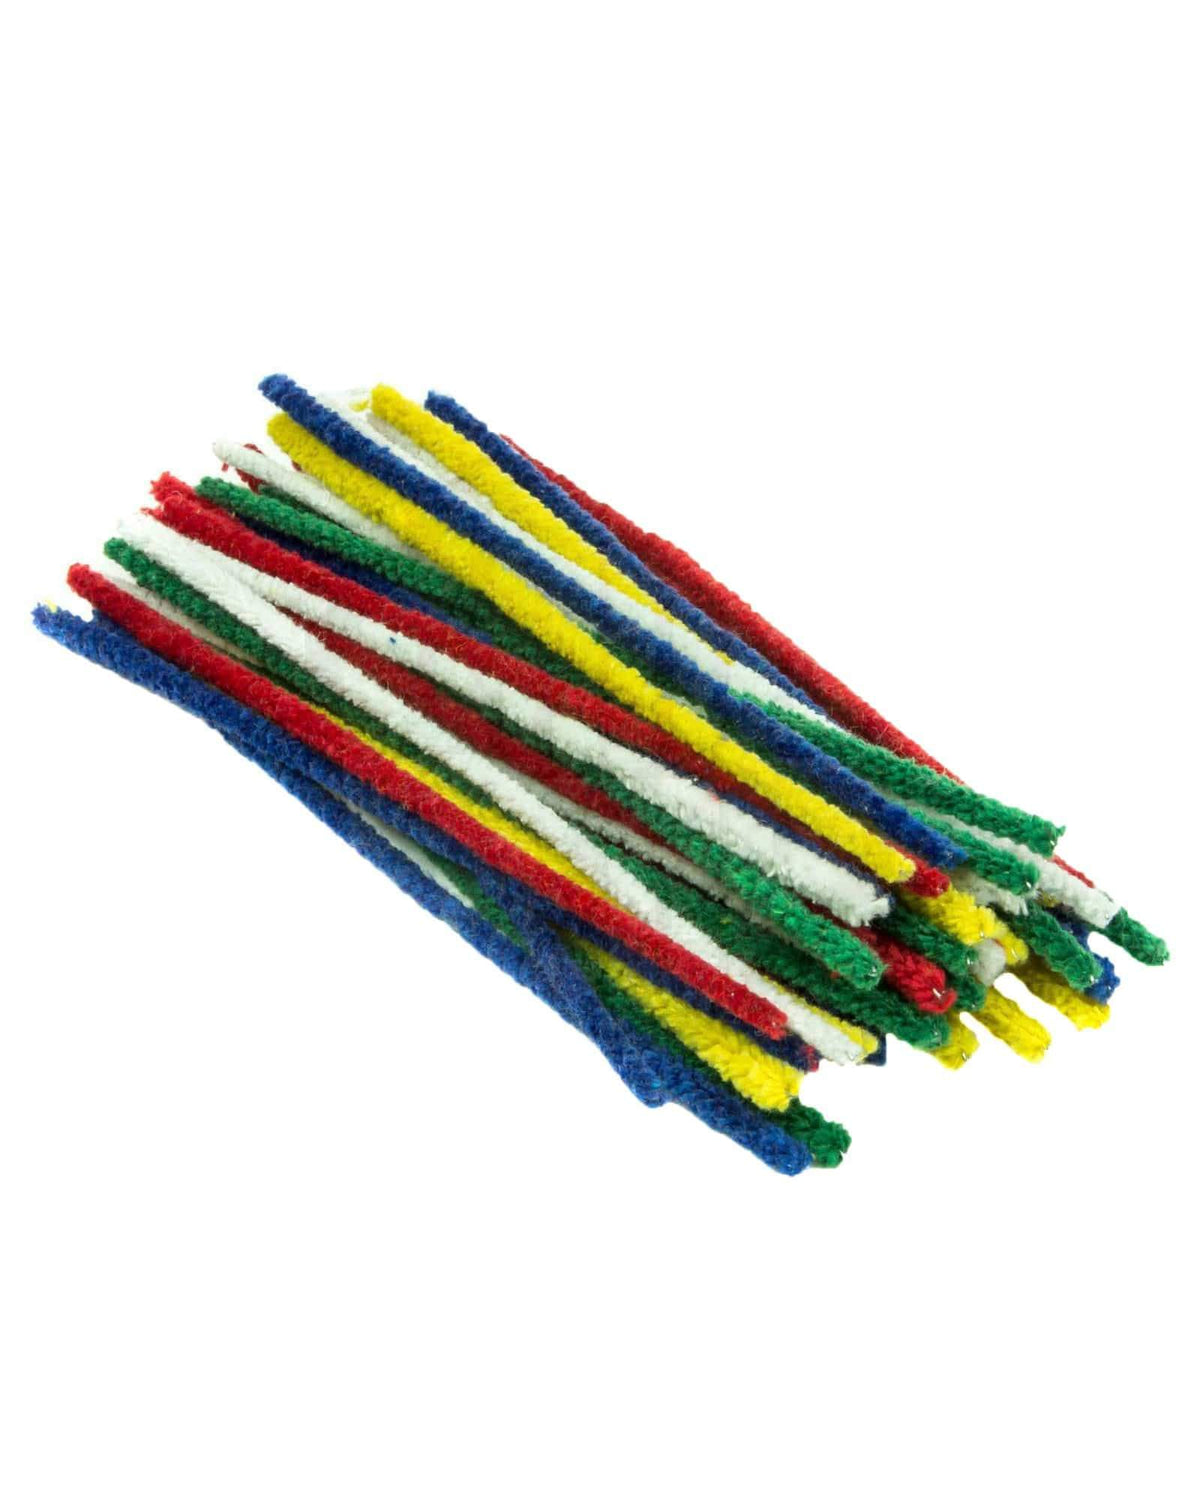 50 pack of pipe cleaners for a water pipe